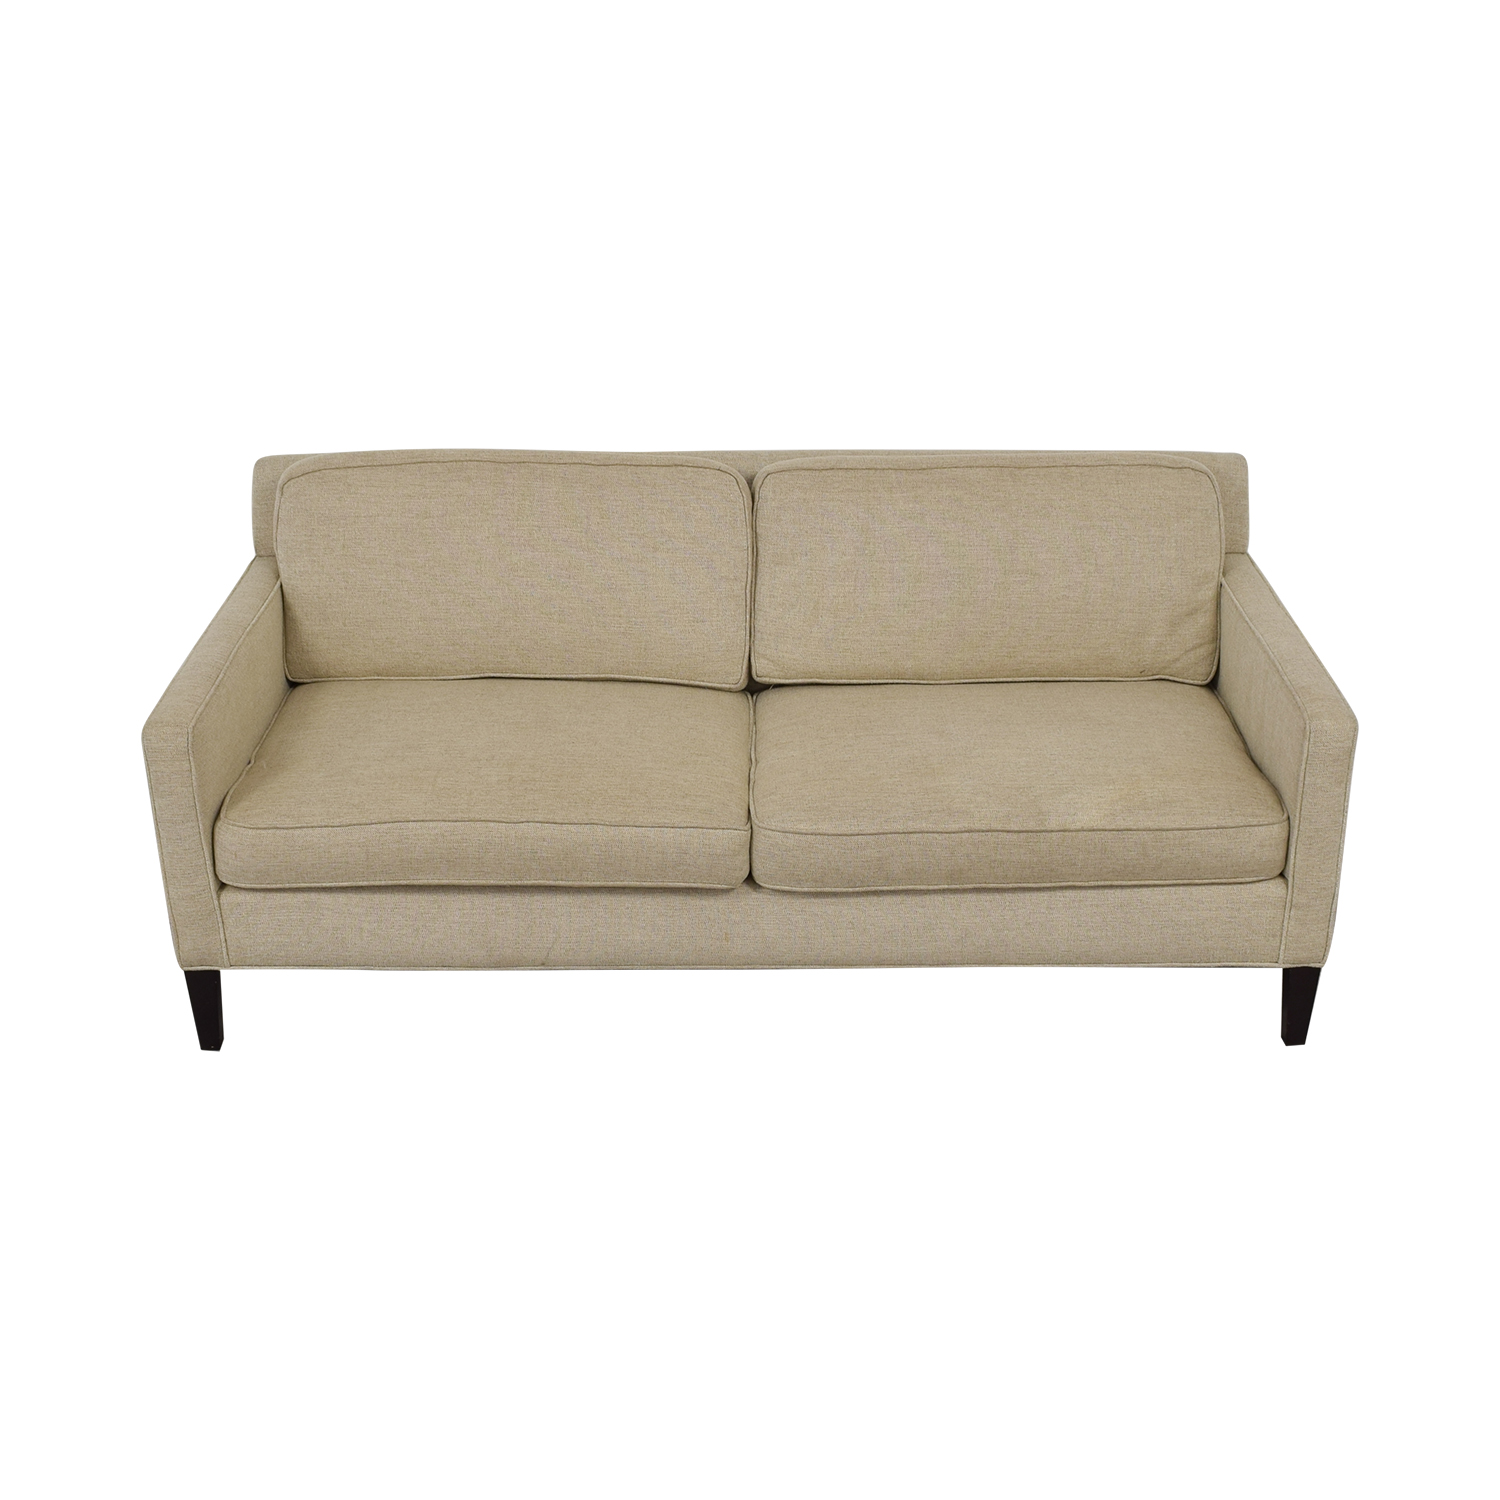 buy Crate & Barrel Rochelle Beige Two-Cushion Sofa Crate & Barrel Classic Sofas